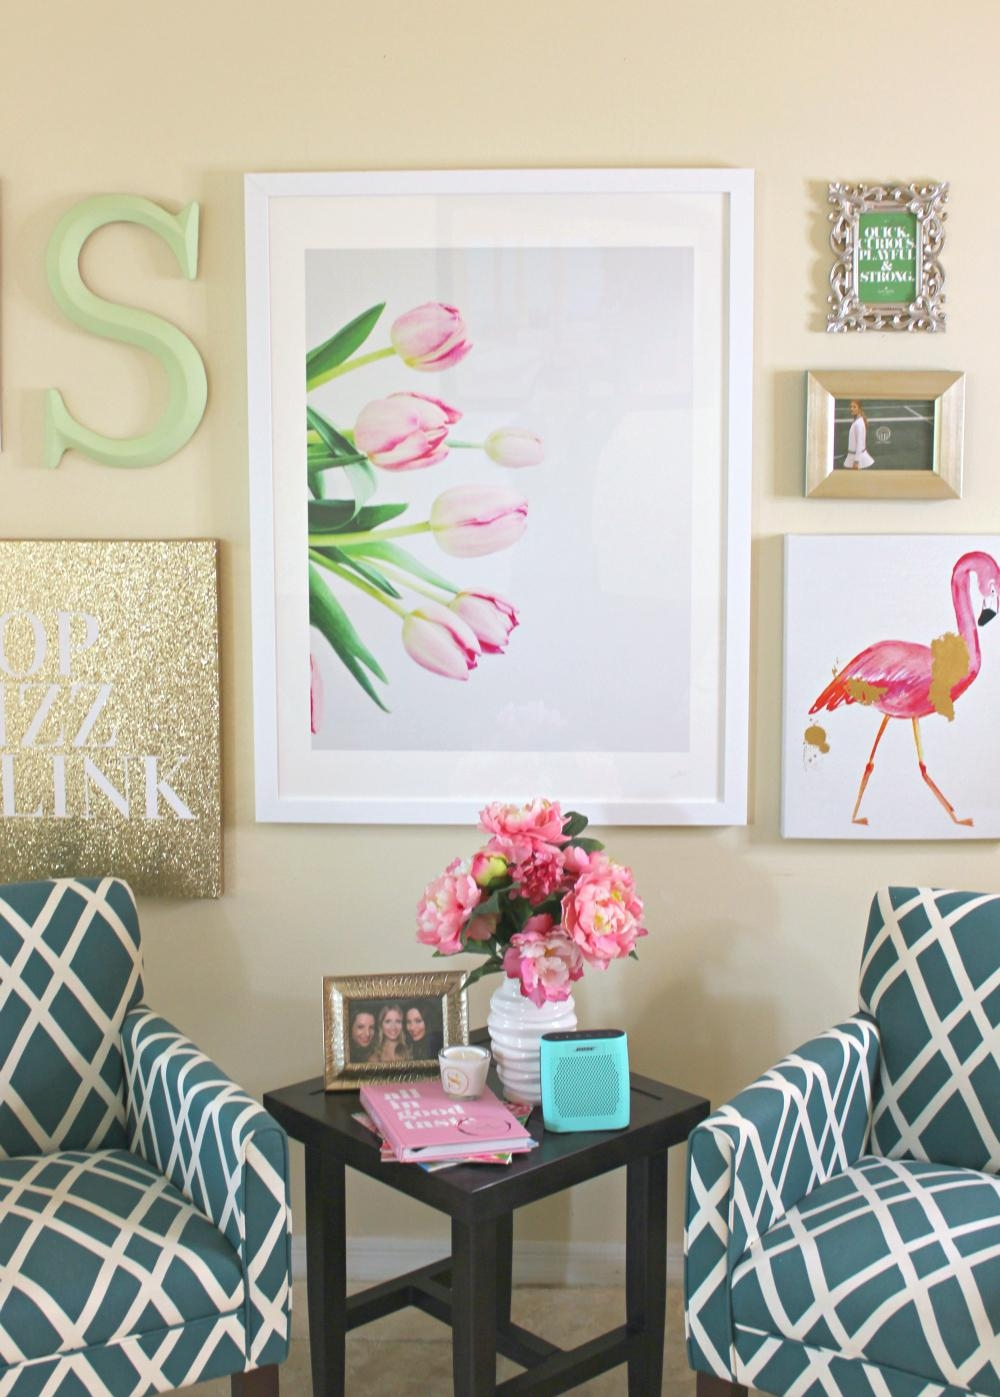 Lilly Pulitzer Inspired Wall Art Collage | Diary Of A Debutante Intended For Vibrant Wall Art (View 7 of 20)